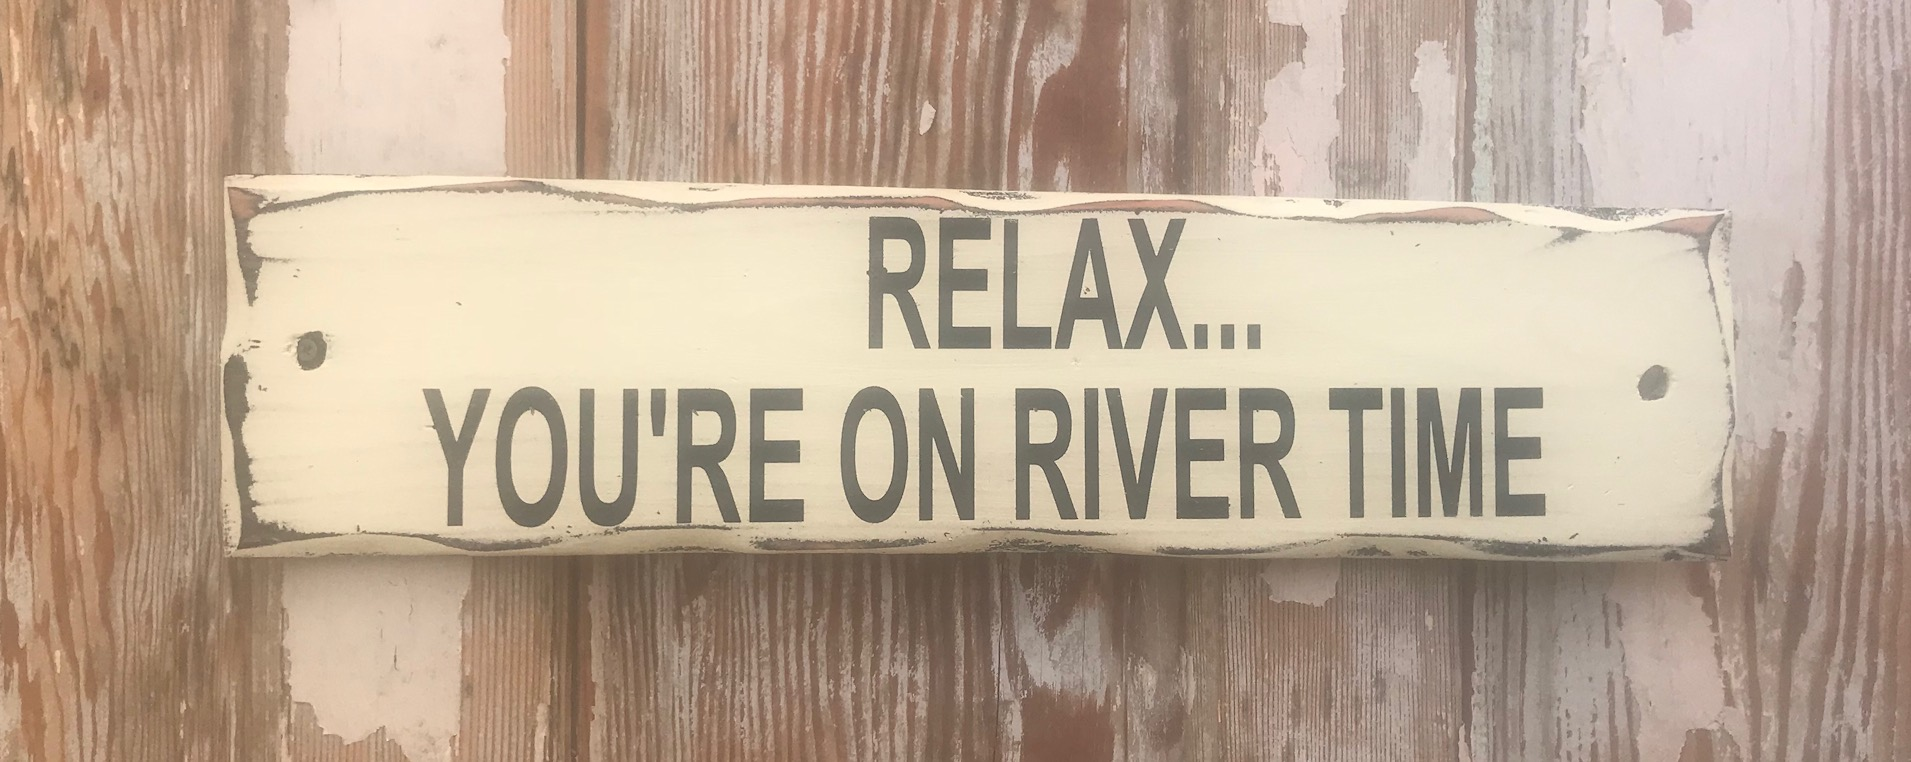 Relax X Due.Relax You Re On River Time Rustic Wood Sign